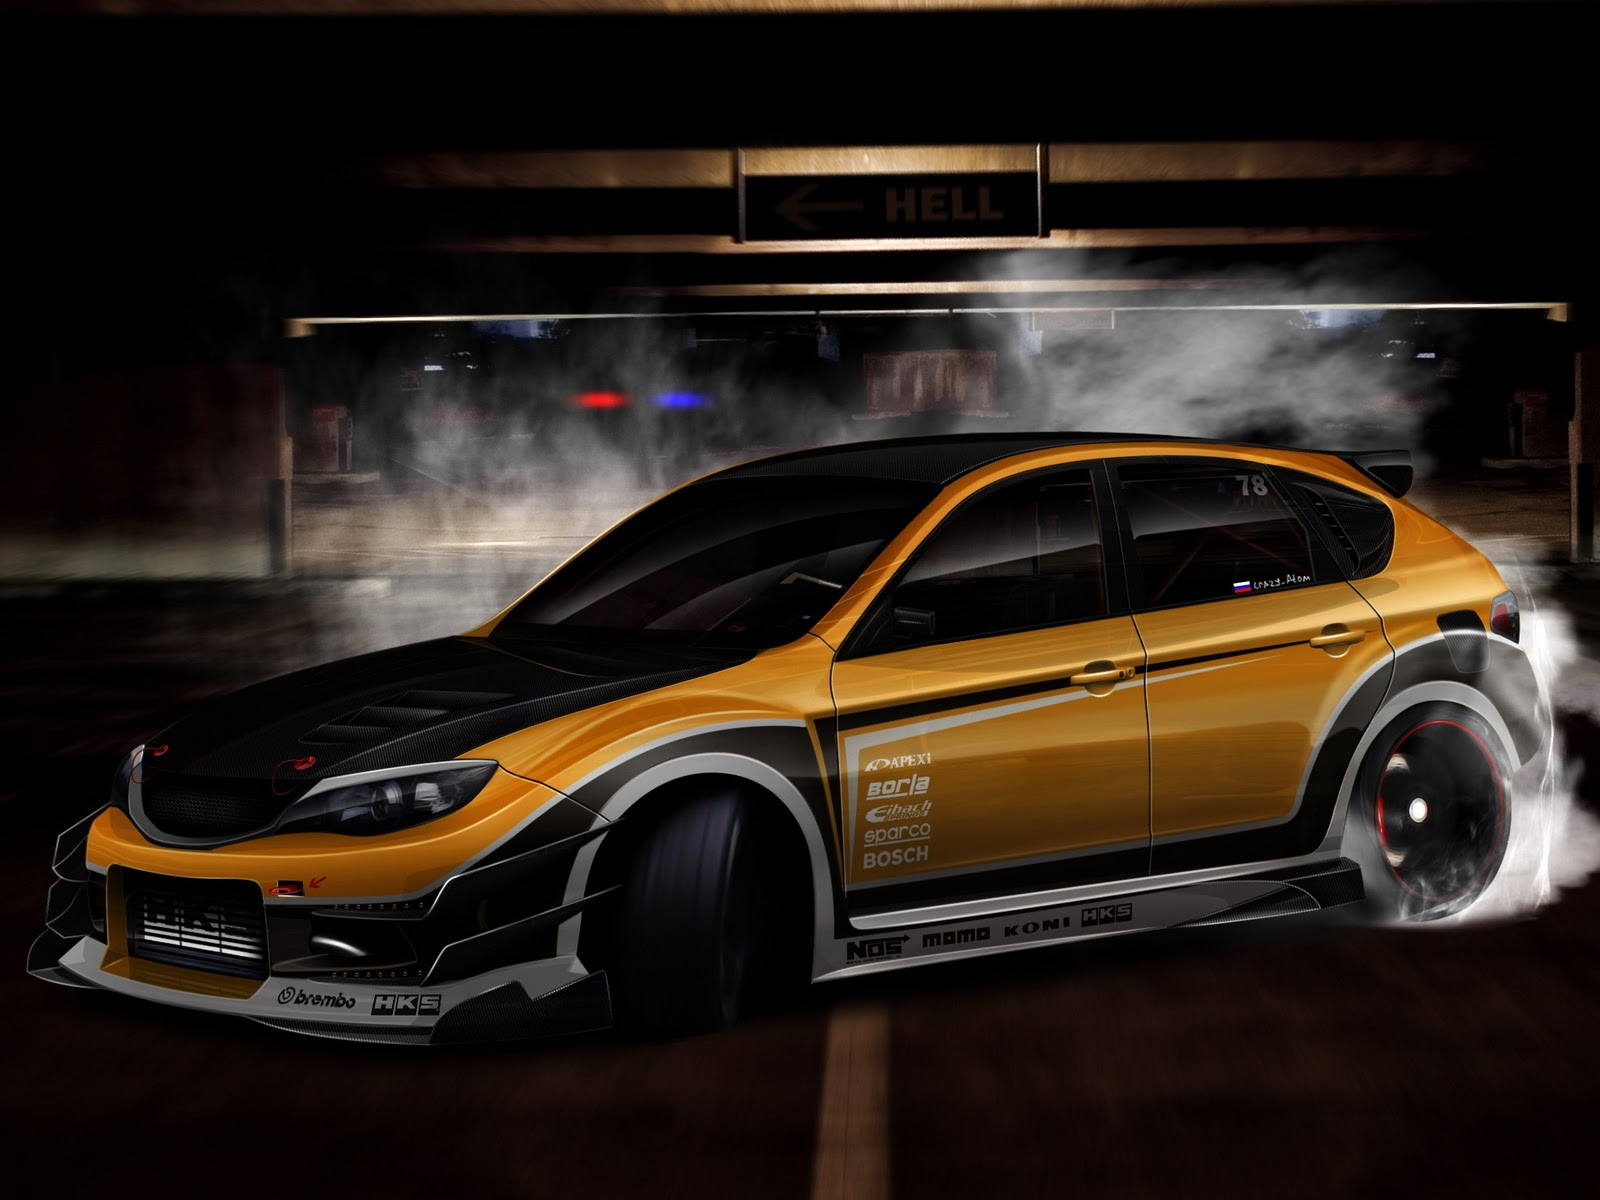 18166 cars wallpapers hd 1600x1200